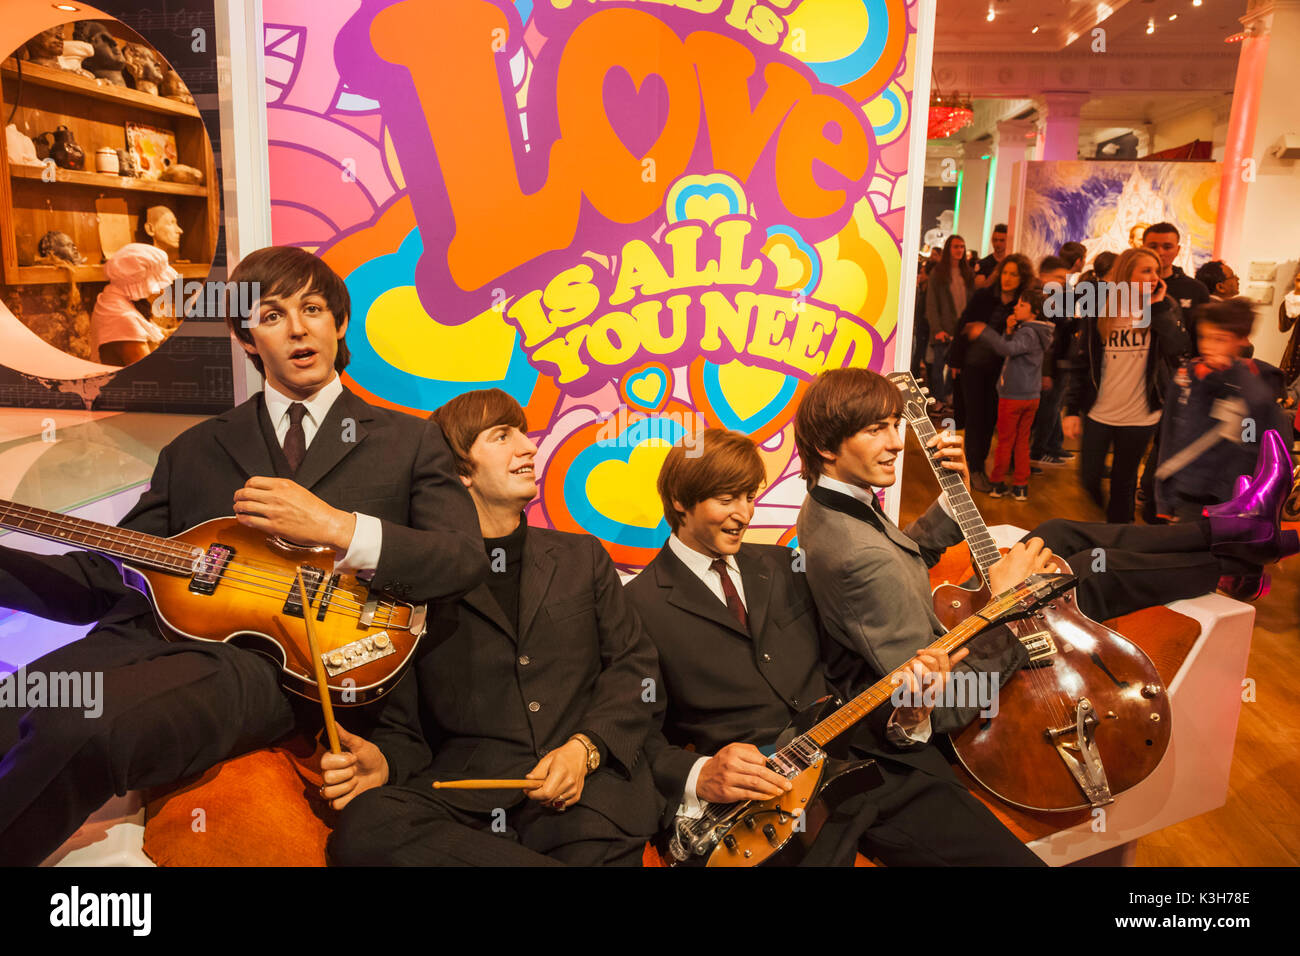 England, London, Madame Tussauds, Wax Figure of The Beatles - Stock Image